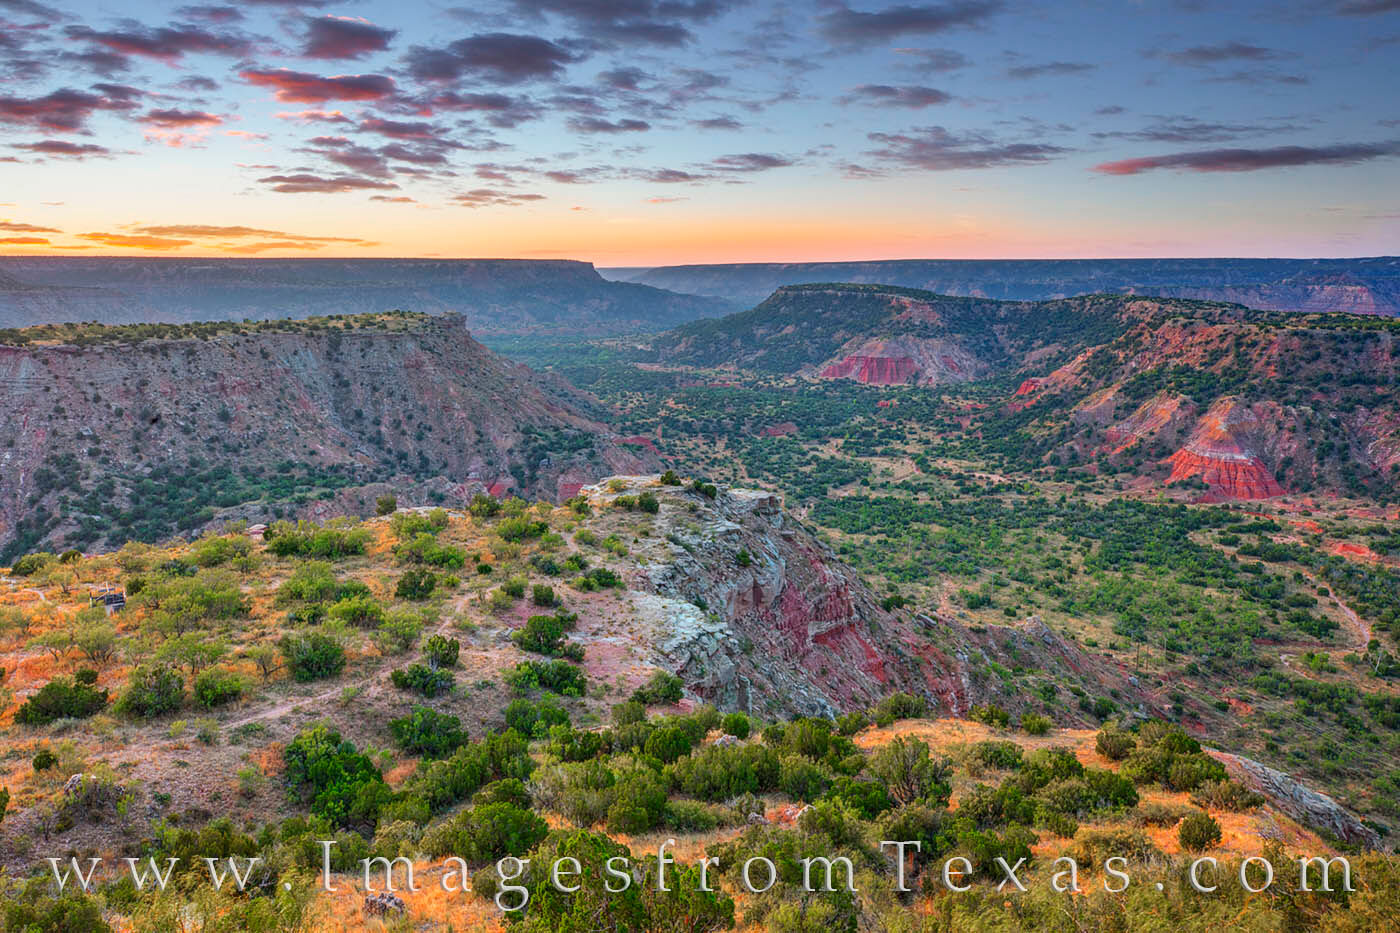 From the rim of the second largest canyon in the U.S., Palo Duro Canyon begins to show its colors under a colorful and tranquil...